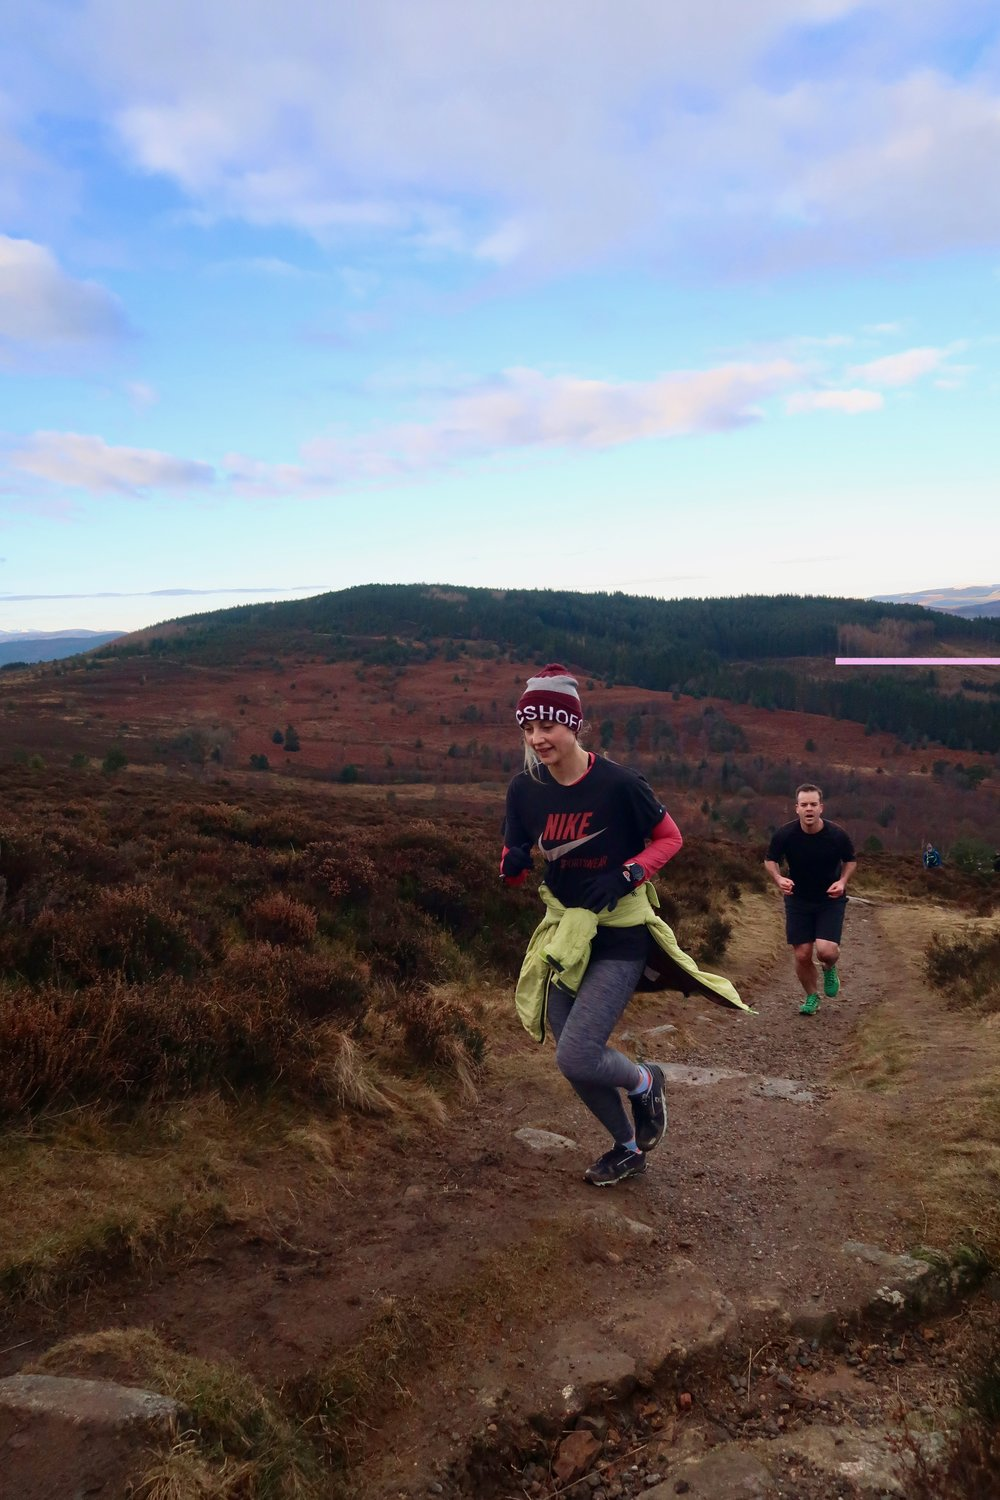 Catherine and Doug running up the climb! What an awesome effort!